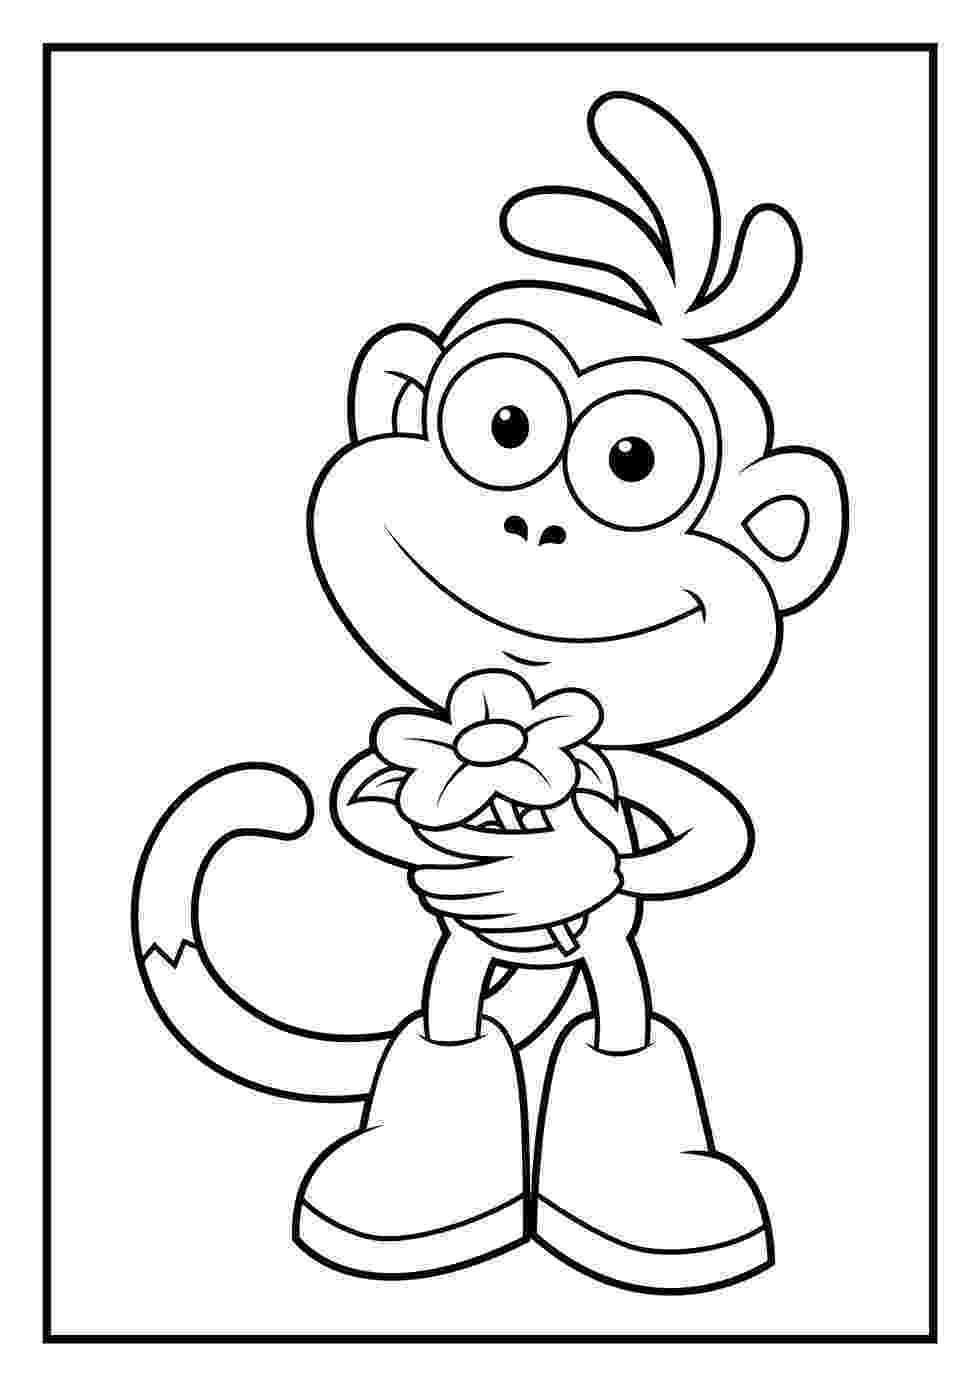 dora and boots coloring pages dora coloring pages diego coloring pages coloring boots and dora pages